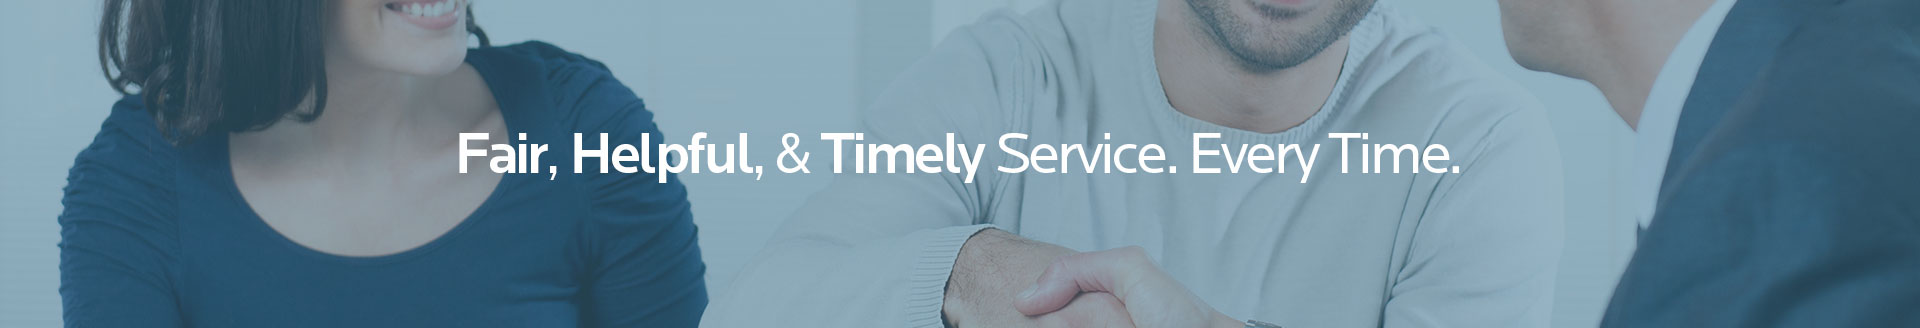 Closeup of a man and a woman meeting with a professional agent and shaking hands with the words 'Fair, Helpful, & Timely Service. Every Time.' on the image